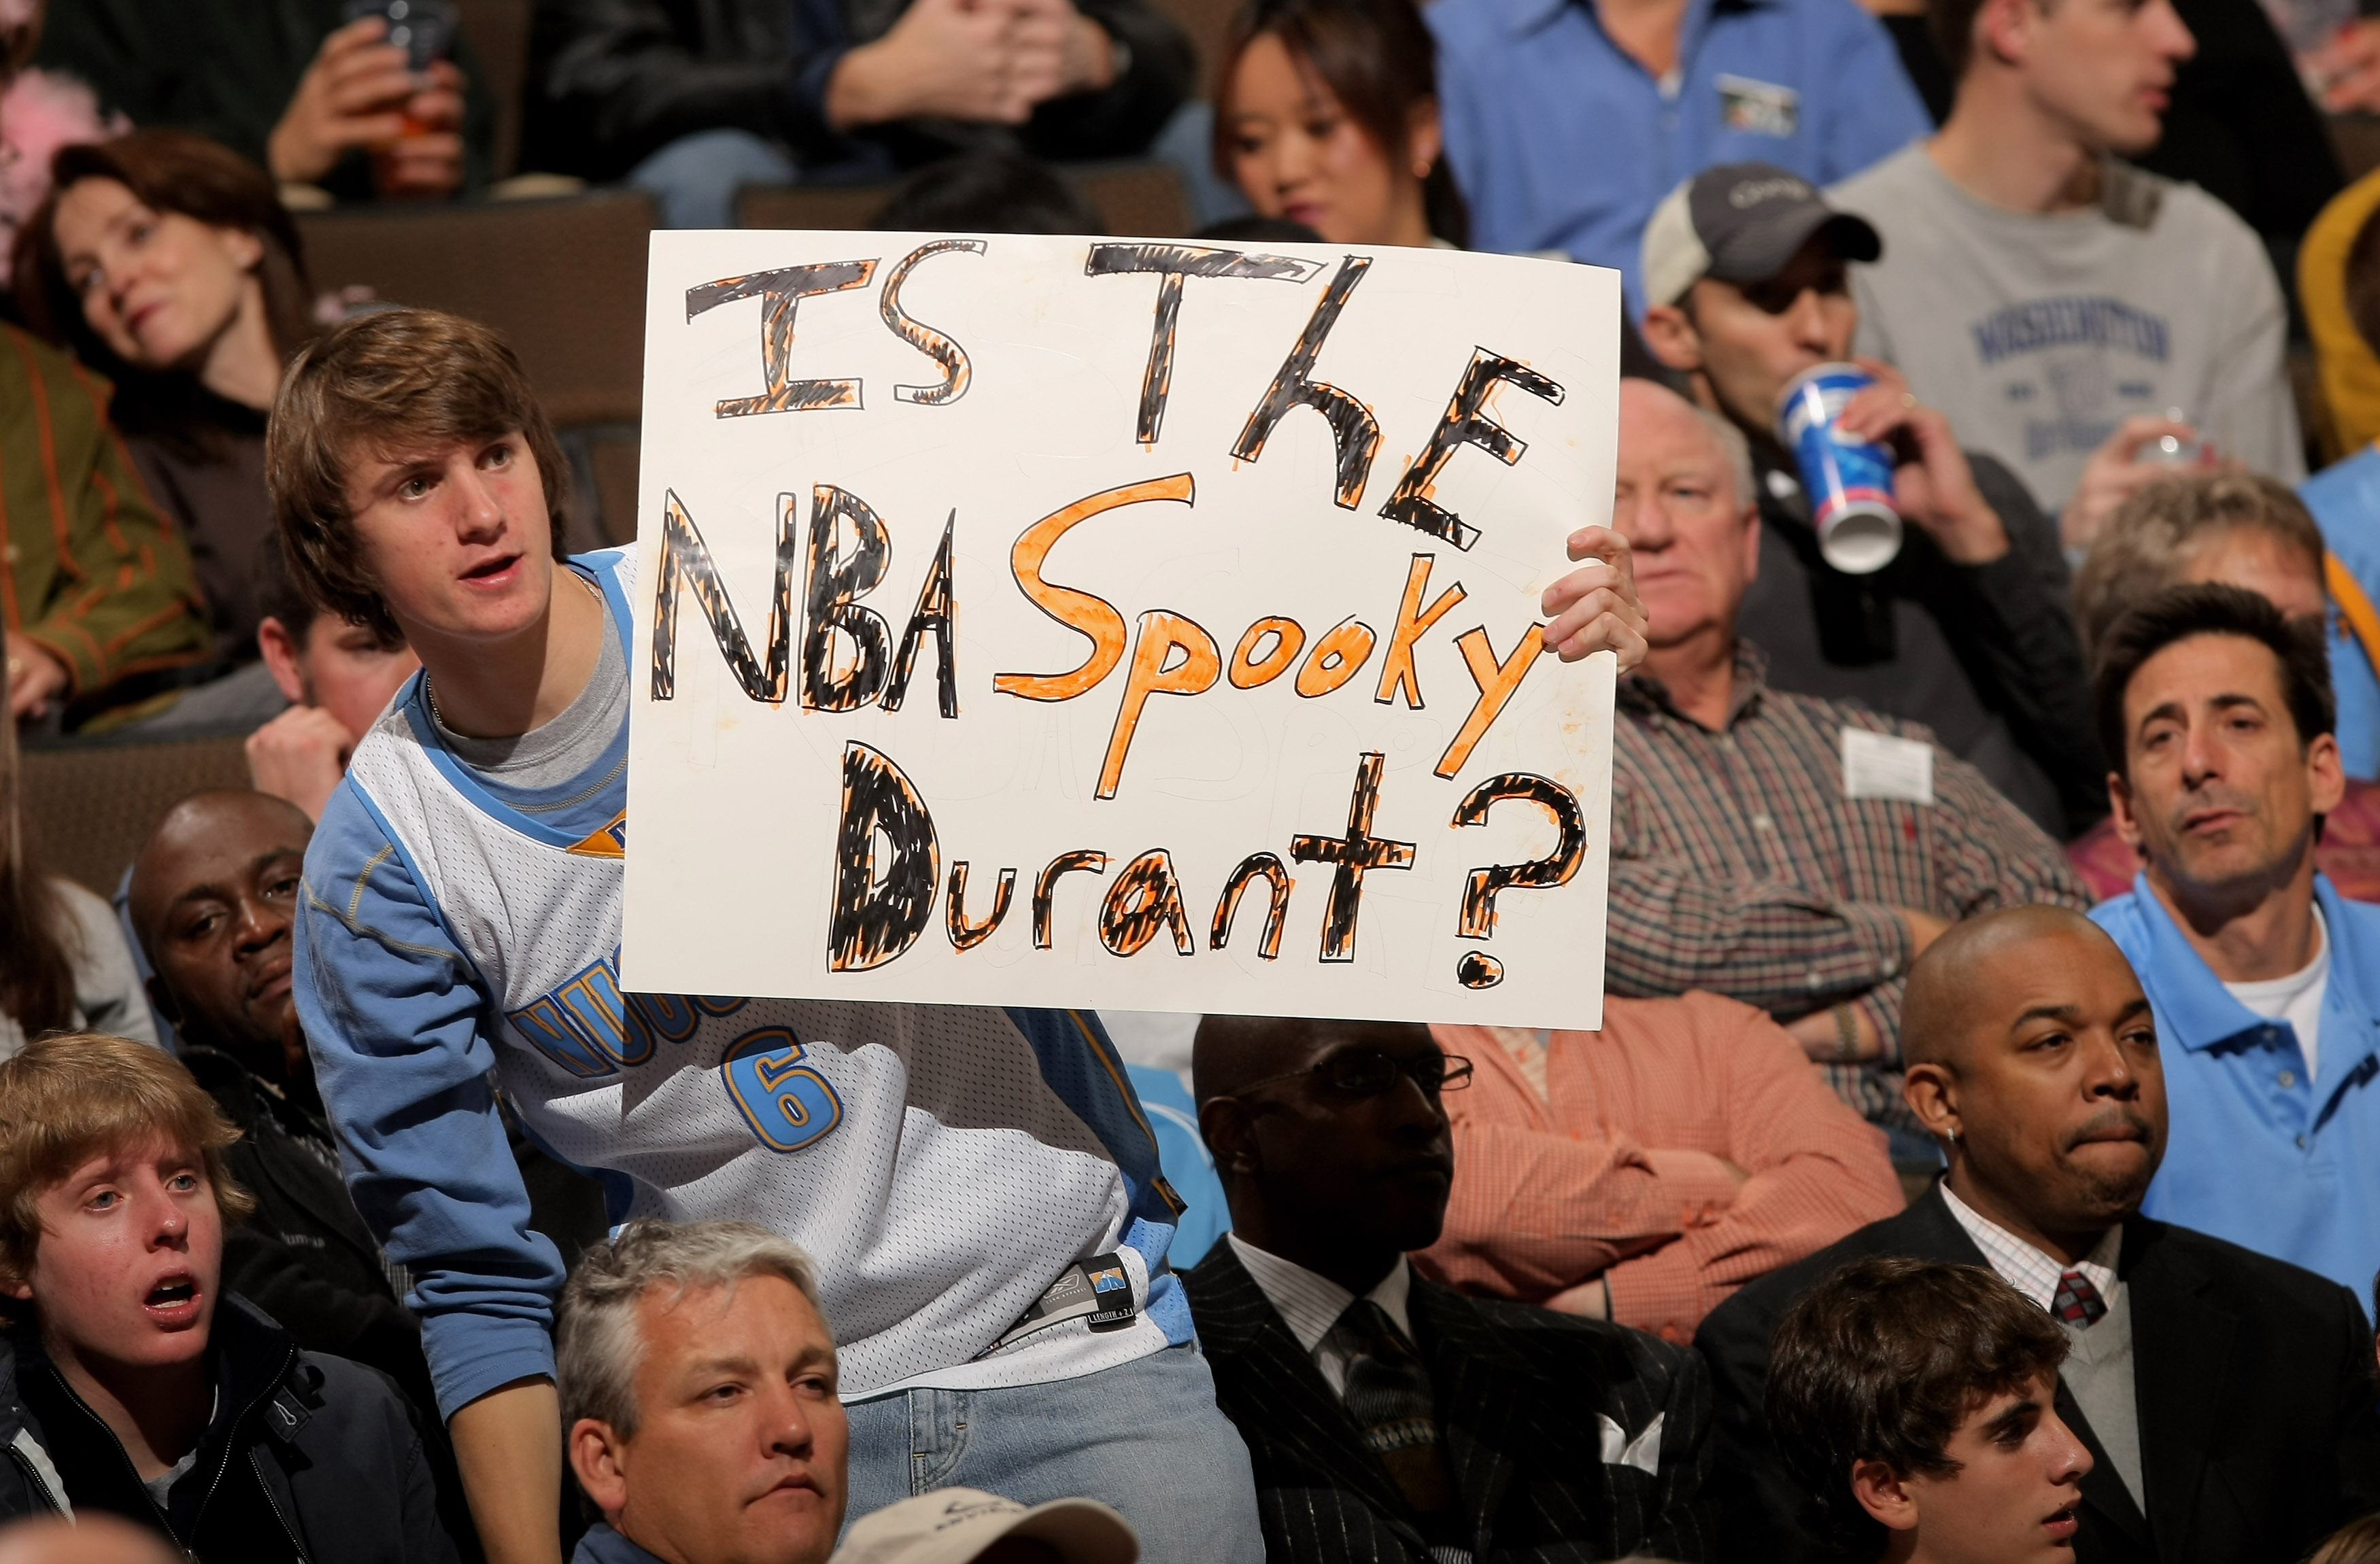 DENVER - OCTOBER 31: A fan poses a question to Kevin Durant #35 of the Seattle SuperSonics as he makes his NBA debut against the Denver Nuggets on Halloween at the Pepsi Center on October 31, 2007 in Denver, Colorado. NOTE TO USER: User expressly acknowle